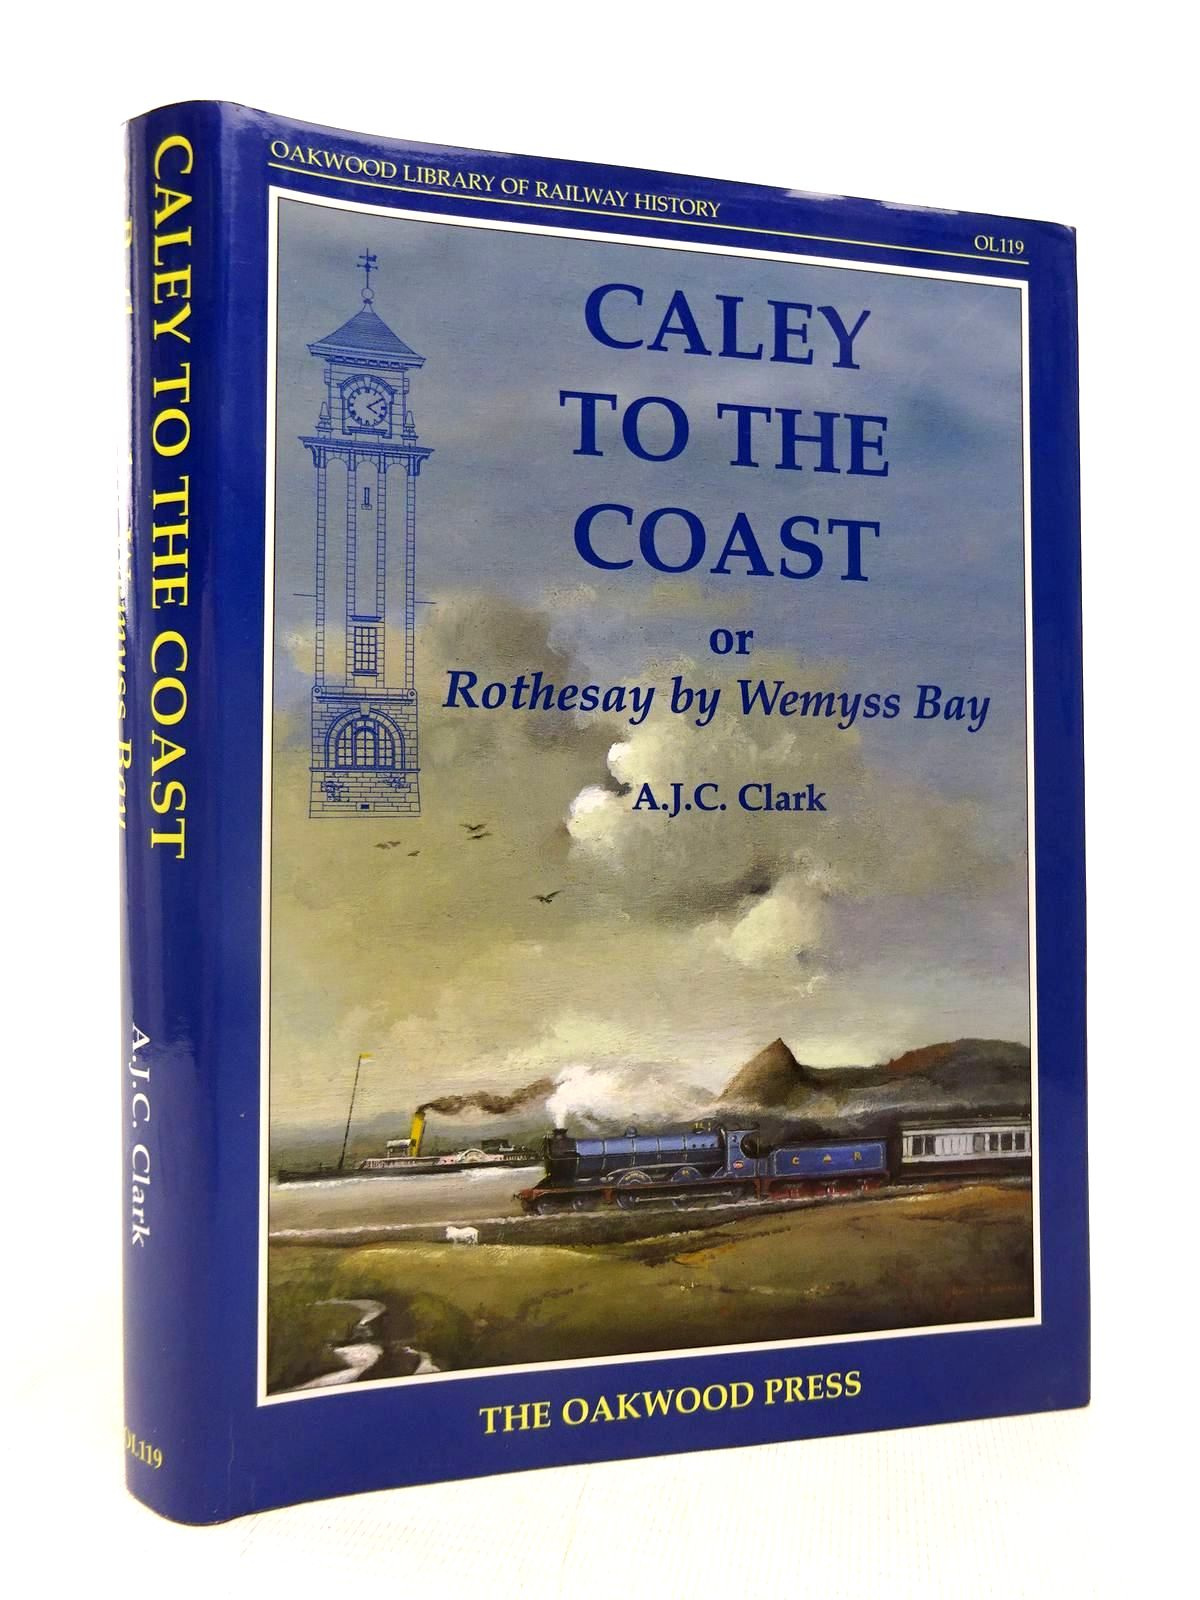 Photo of CALEY TO THE COAST OR ROTHESAY BY WEMYSS BAY written by Clark, A.J.C. published by The Oakwood Press (STOCK CODE: 1816727)  for sale by Stella & Rose's Books